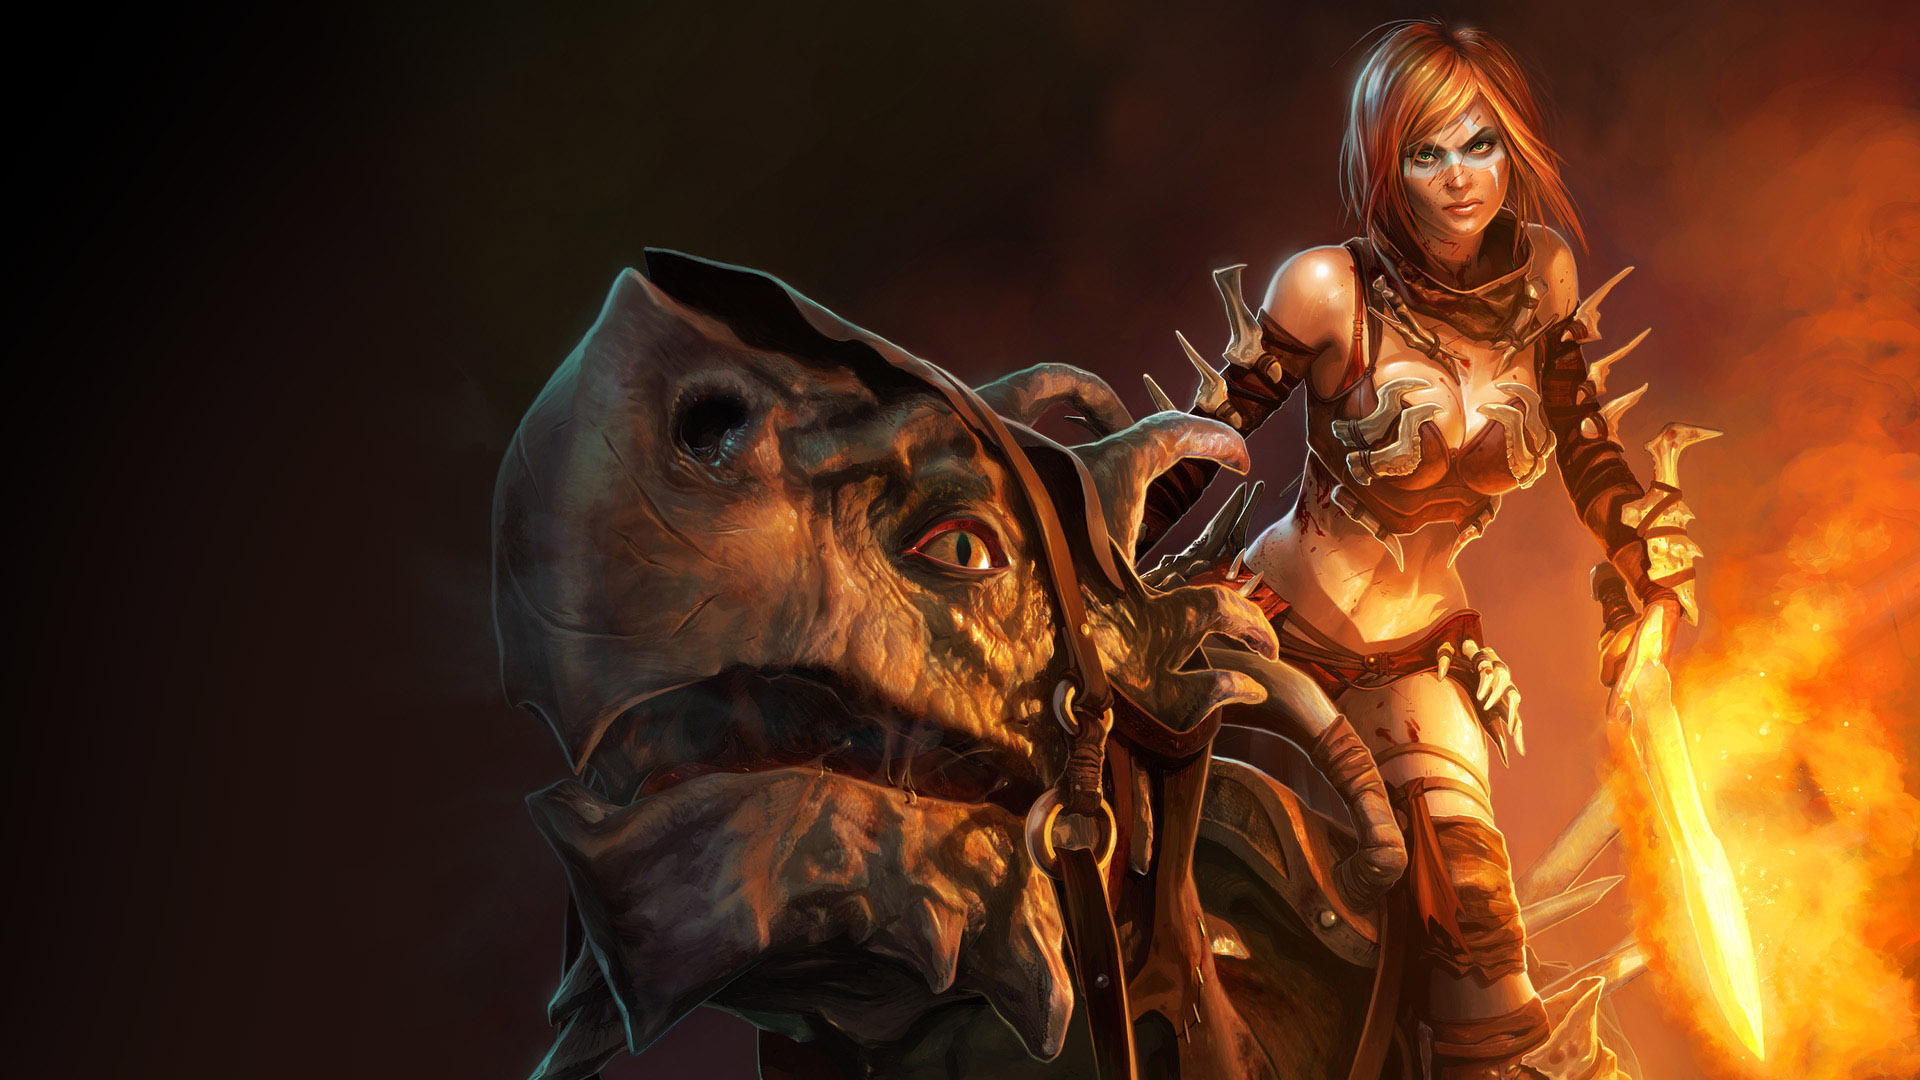 Golden Axe Hd Wallpaper  Background Image  1920X1080  Id88504 - Wallpaper Abyss-7833